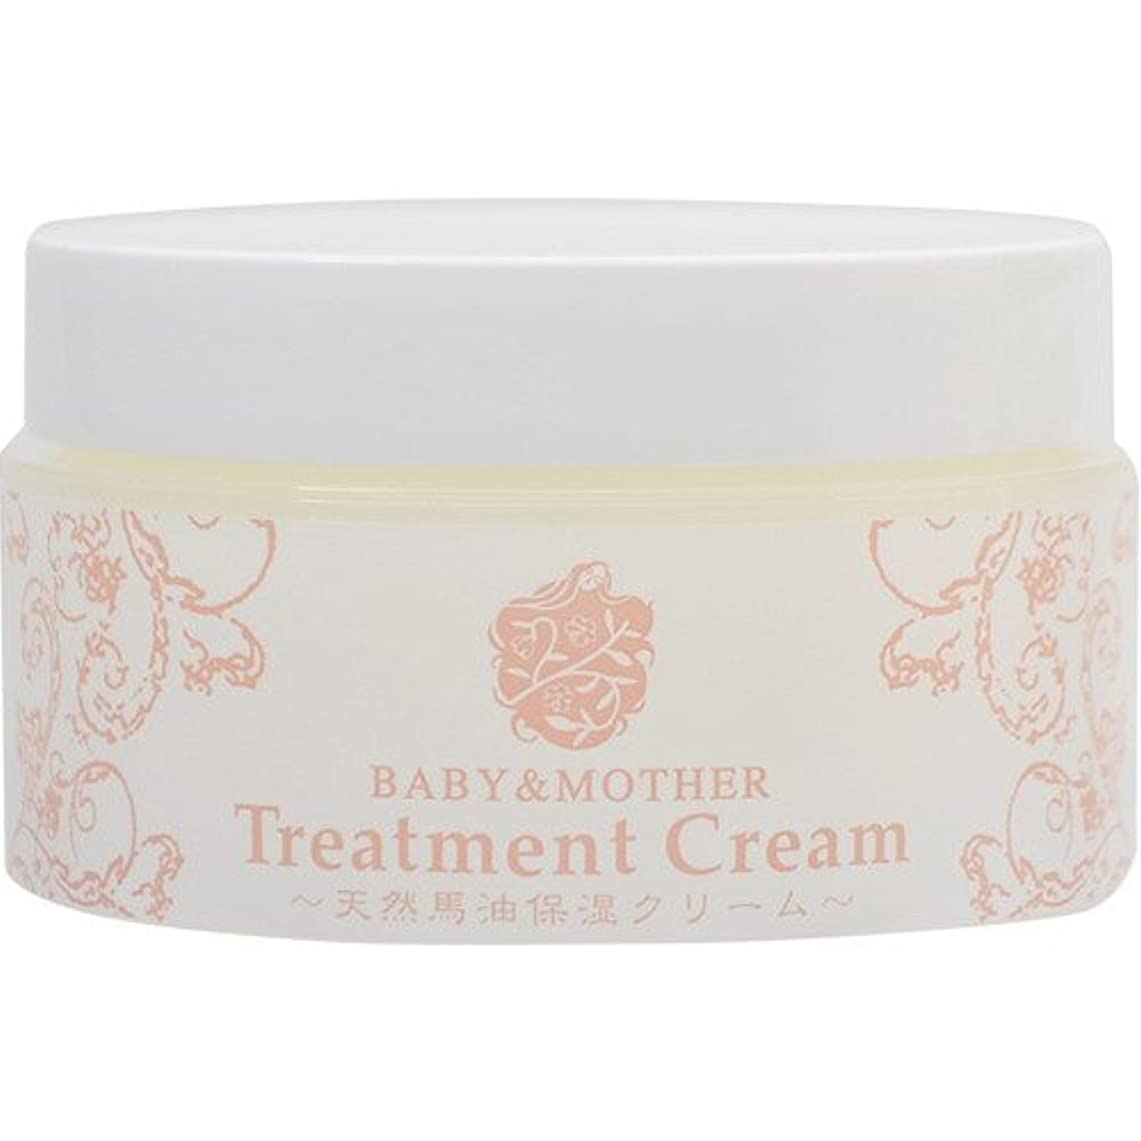 BABY&MOTHER Treatment Cream 天然馬油保湿クリーム 80g